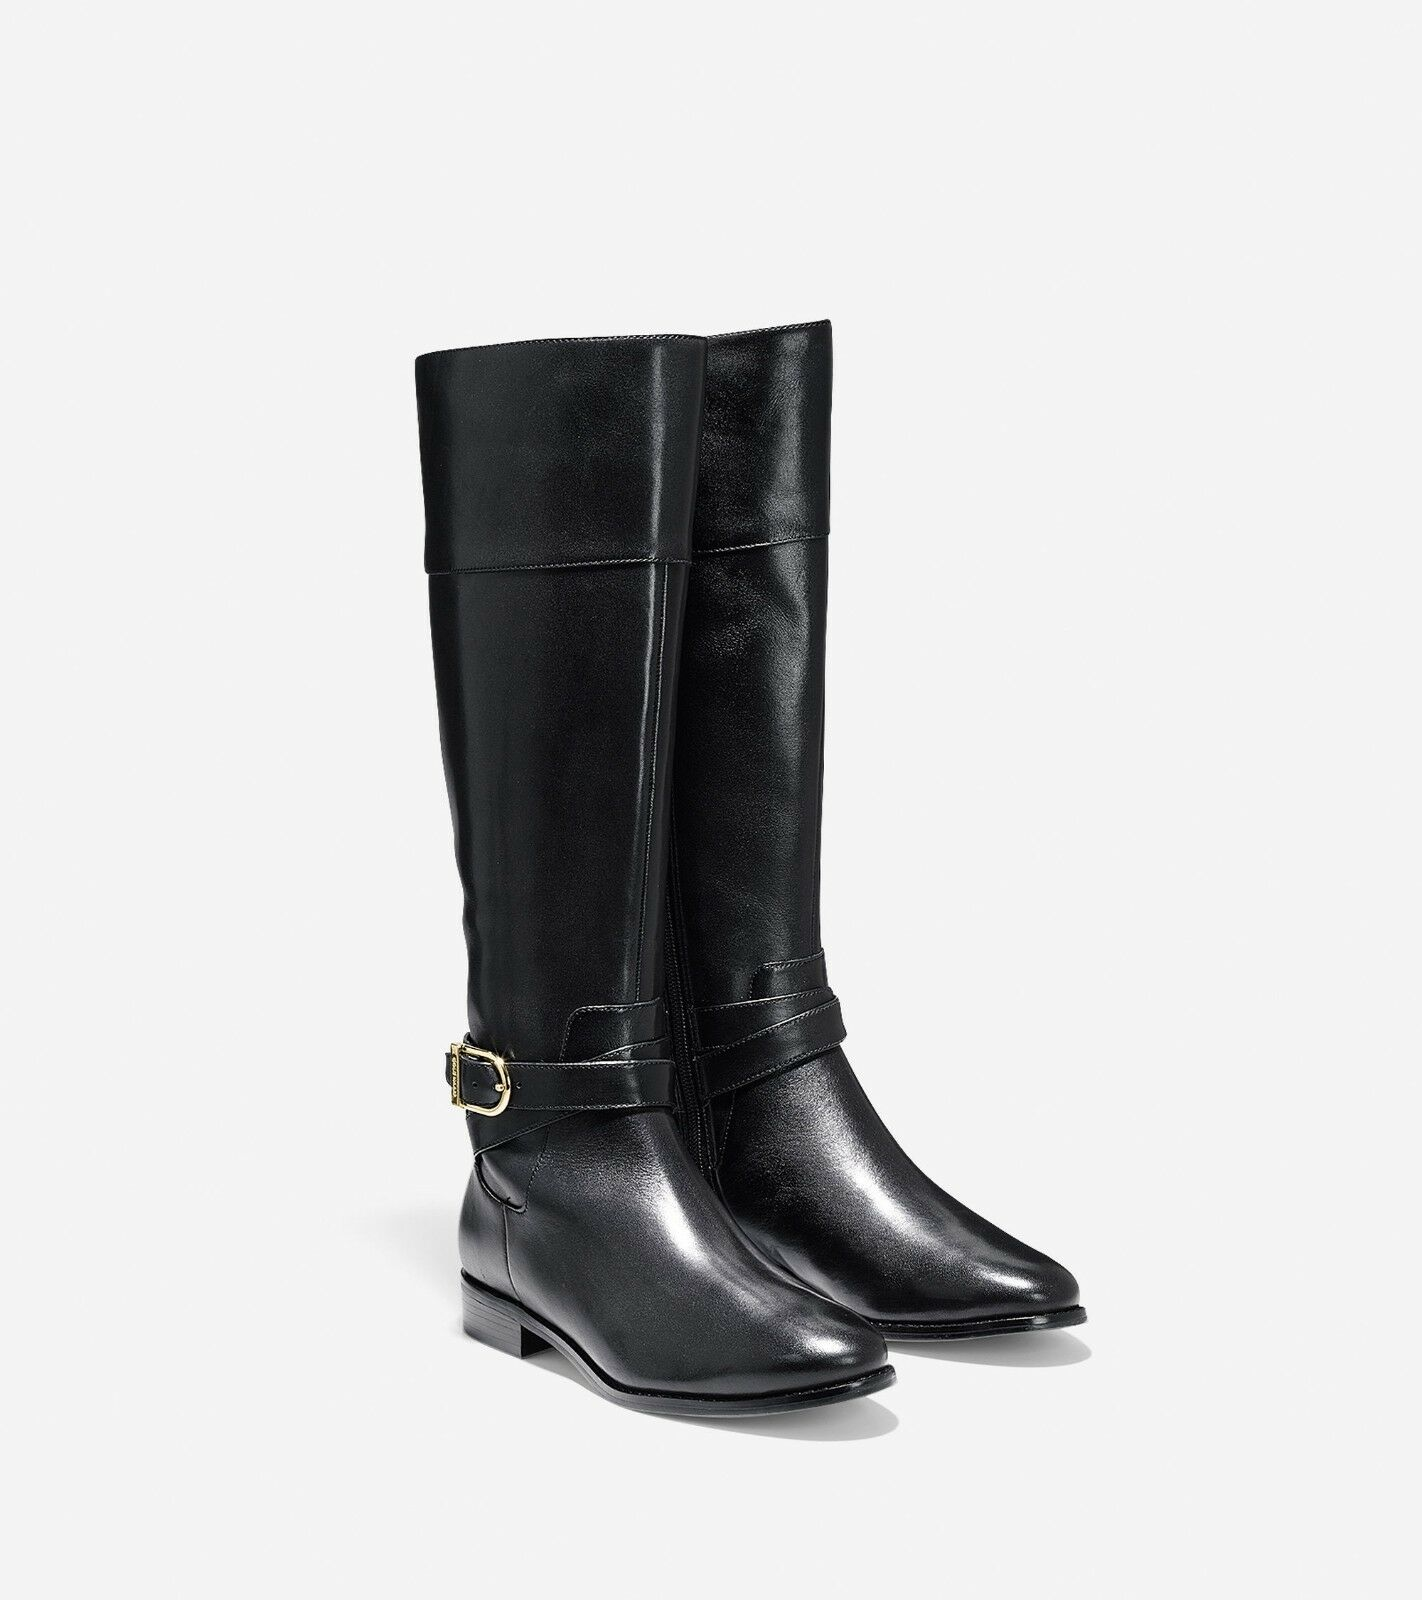 NWT 398  Cole Haan Black Leather Women's Air Tall Boot US Size 7.5B